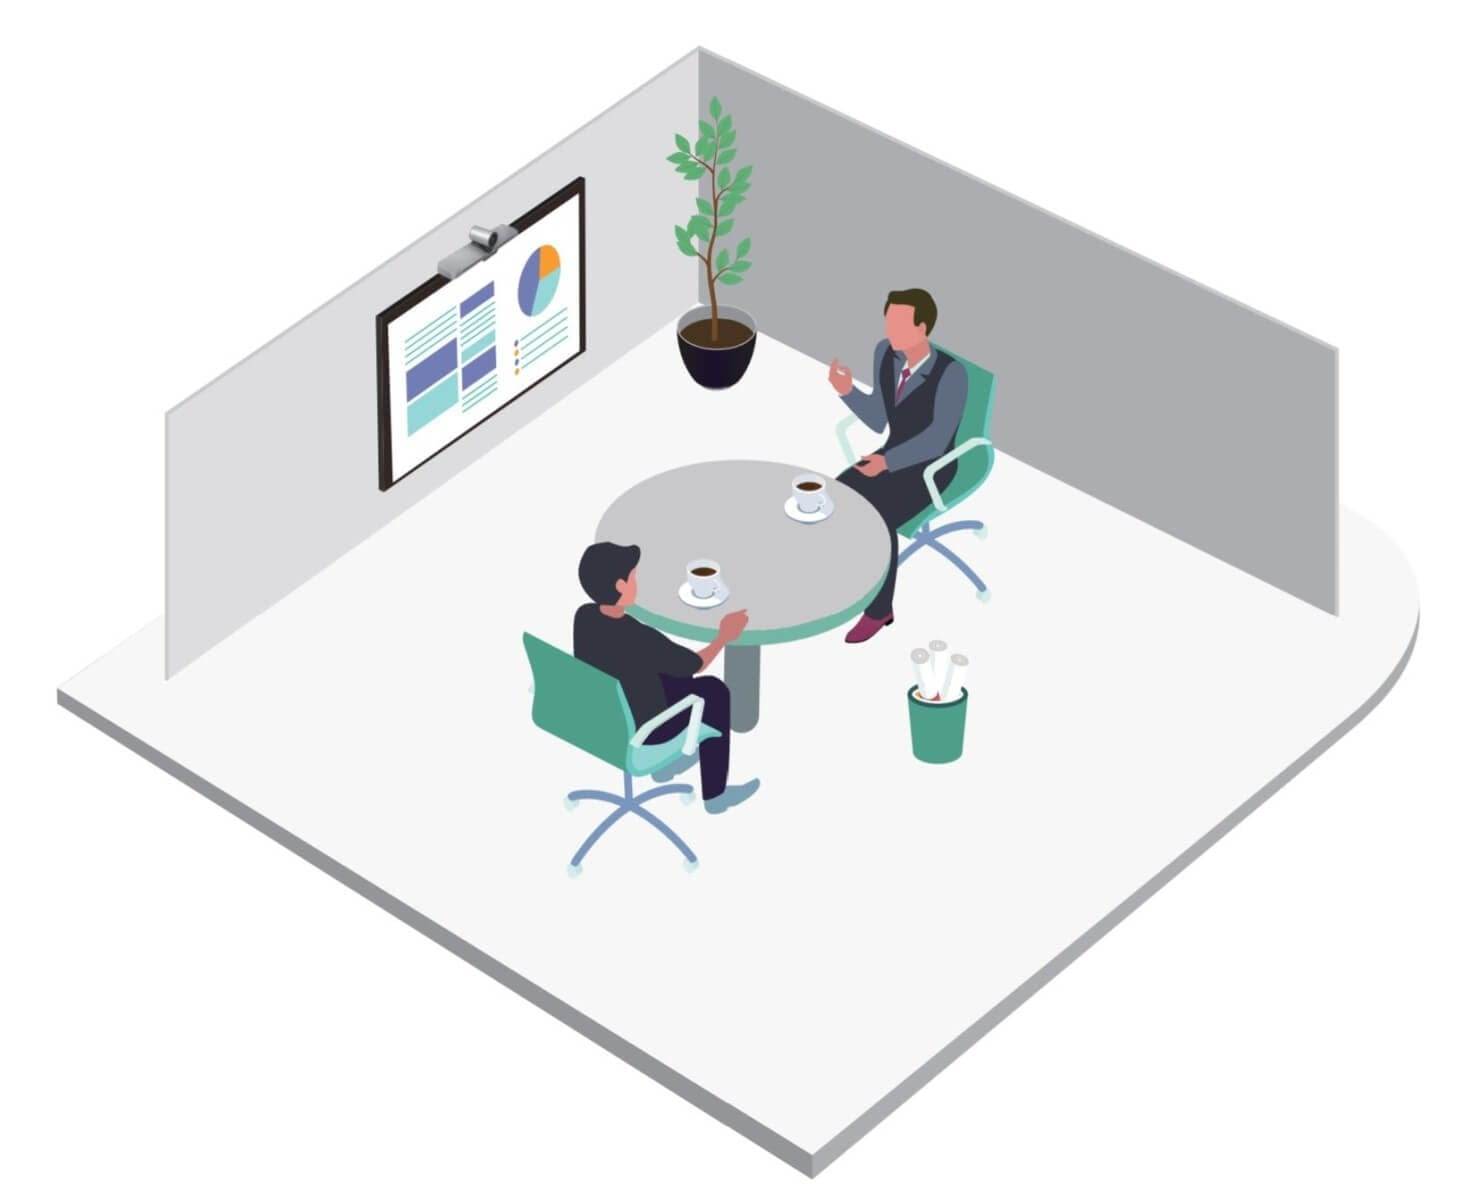 Yealink small room video conferencing